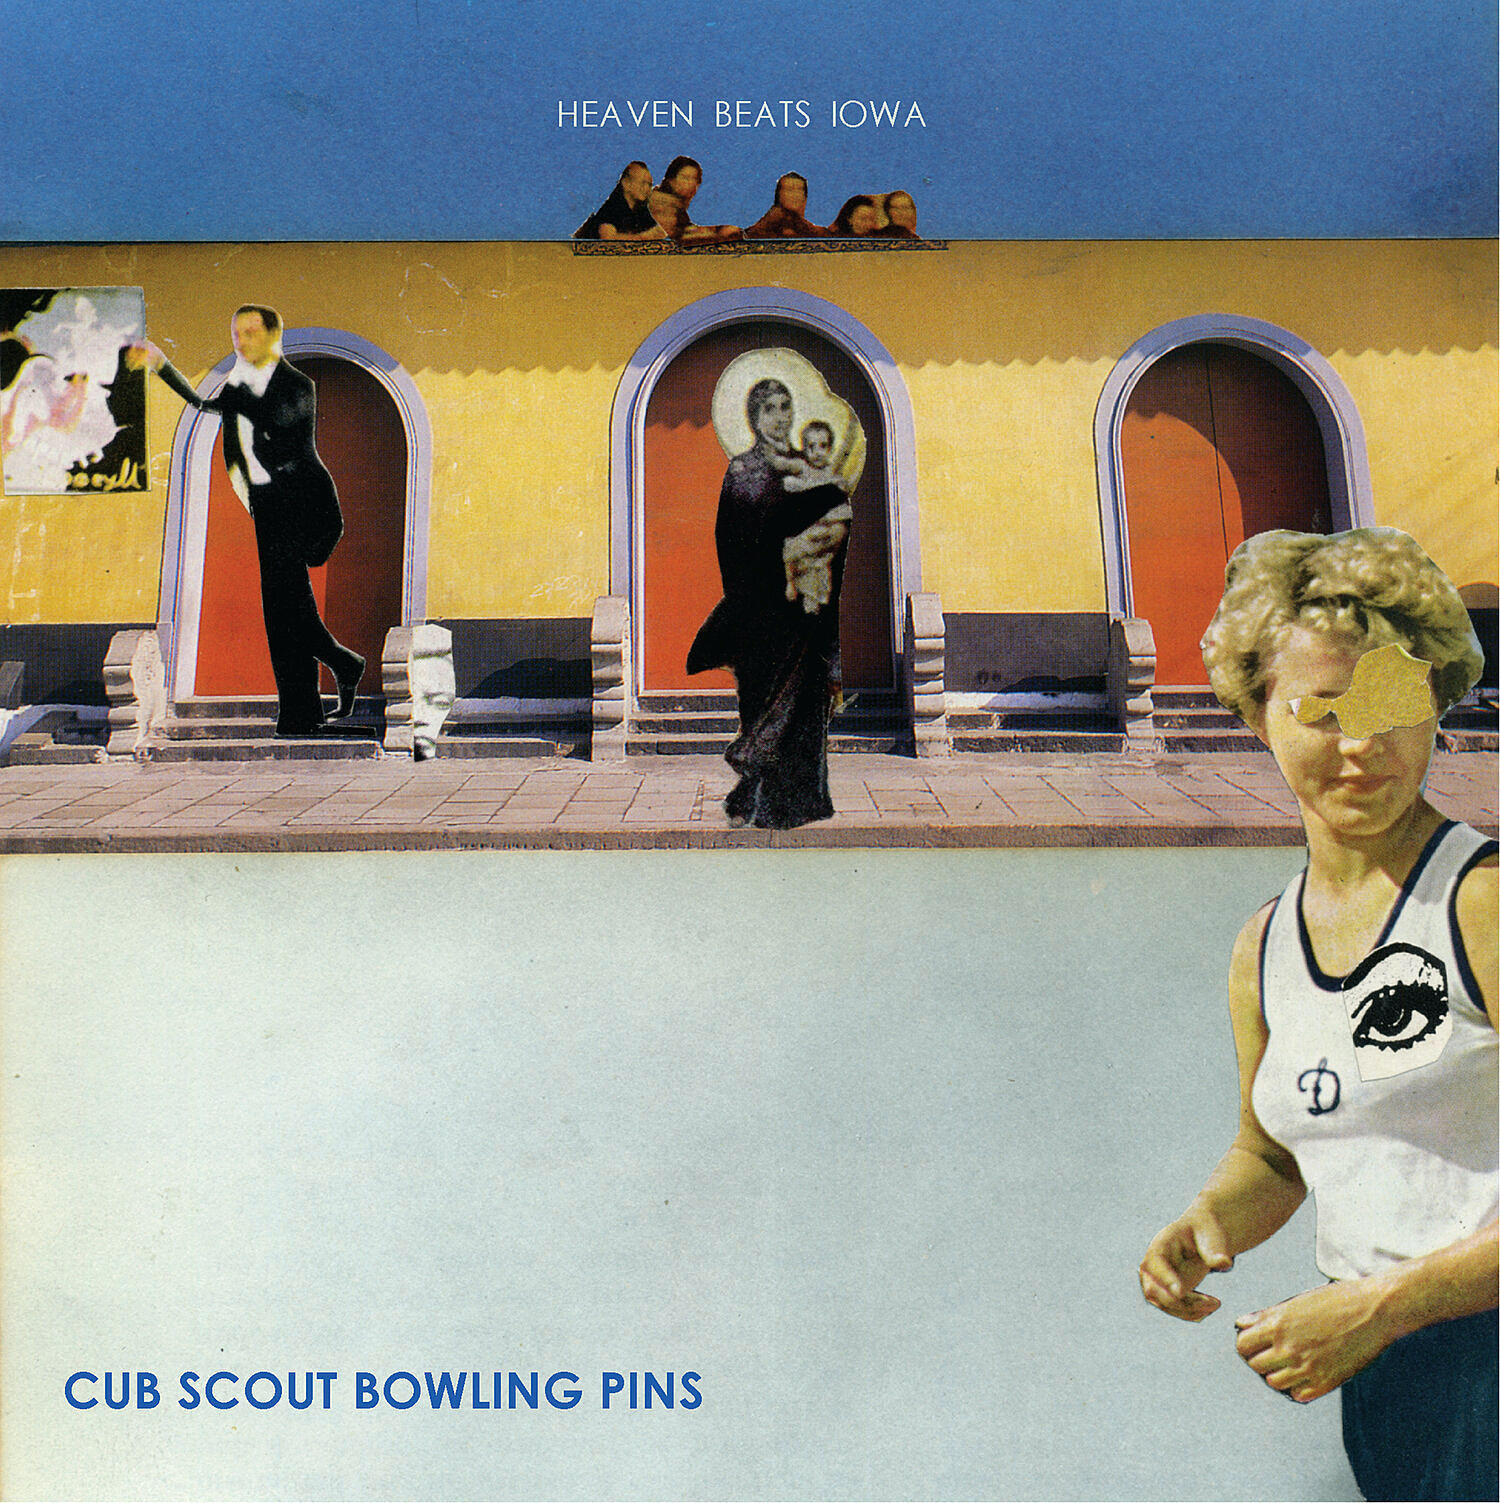 cub scout bowling pins Robert Pollard Forms New Band Cub Scout Bowling Pins, Shares Debut Single Heaven Beats Iowa: Stream